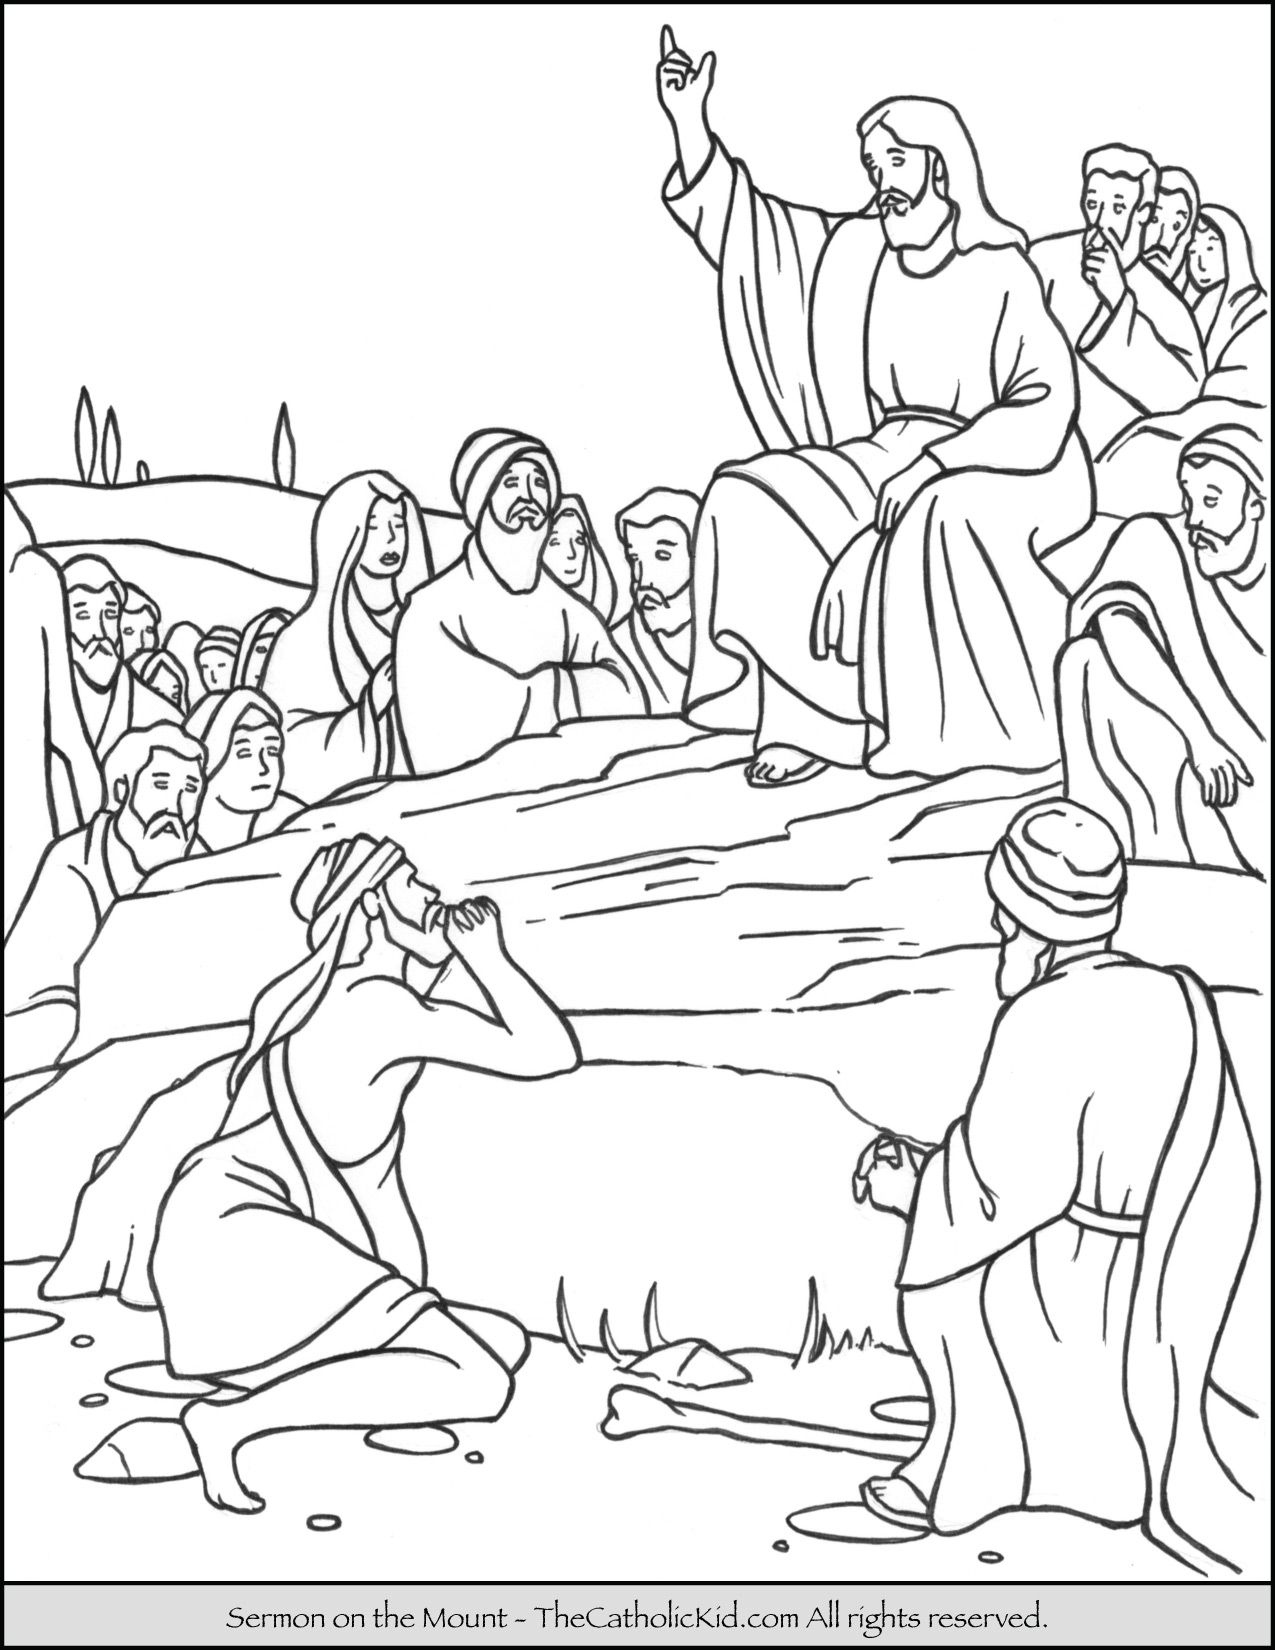 Sermon On The Mount Coloring Page Thecatholickid Com Jesus